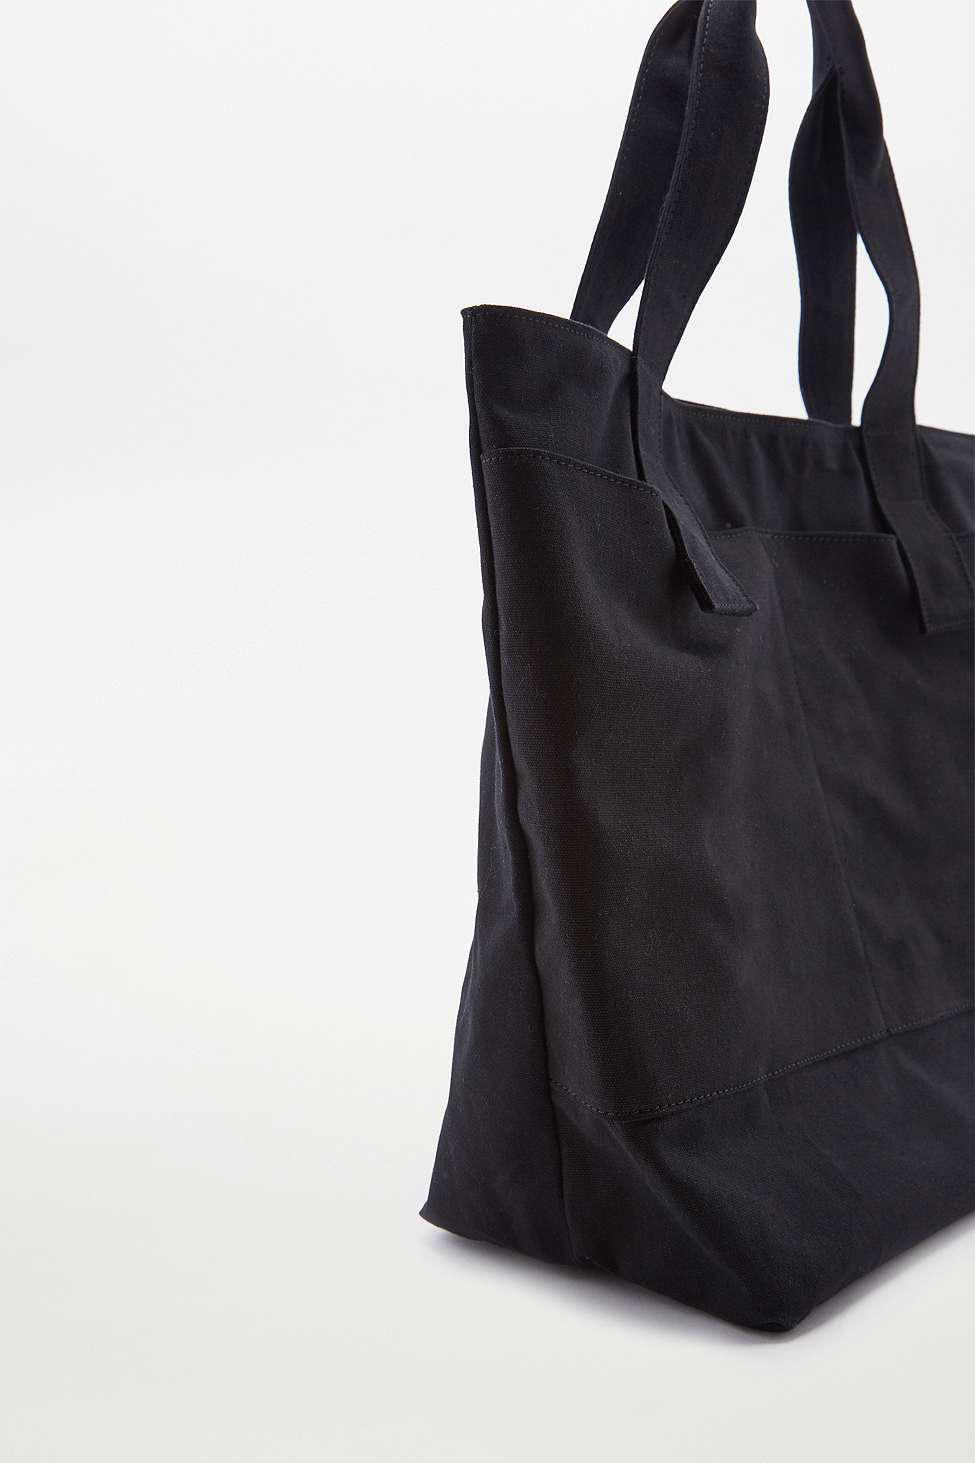 edd1d49d6c7 Urban Outfitters Oversized Black Canvas Tote Bag - Womens All in ...